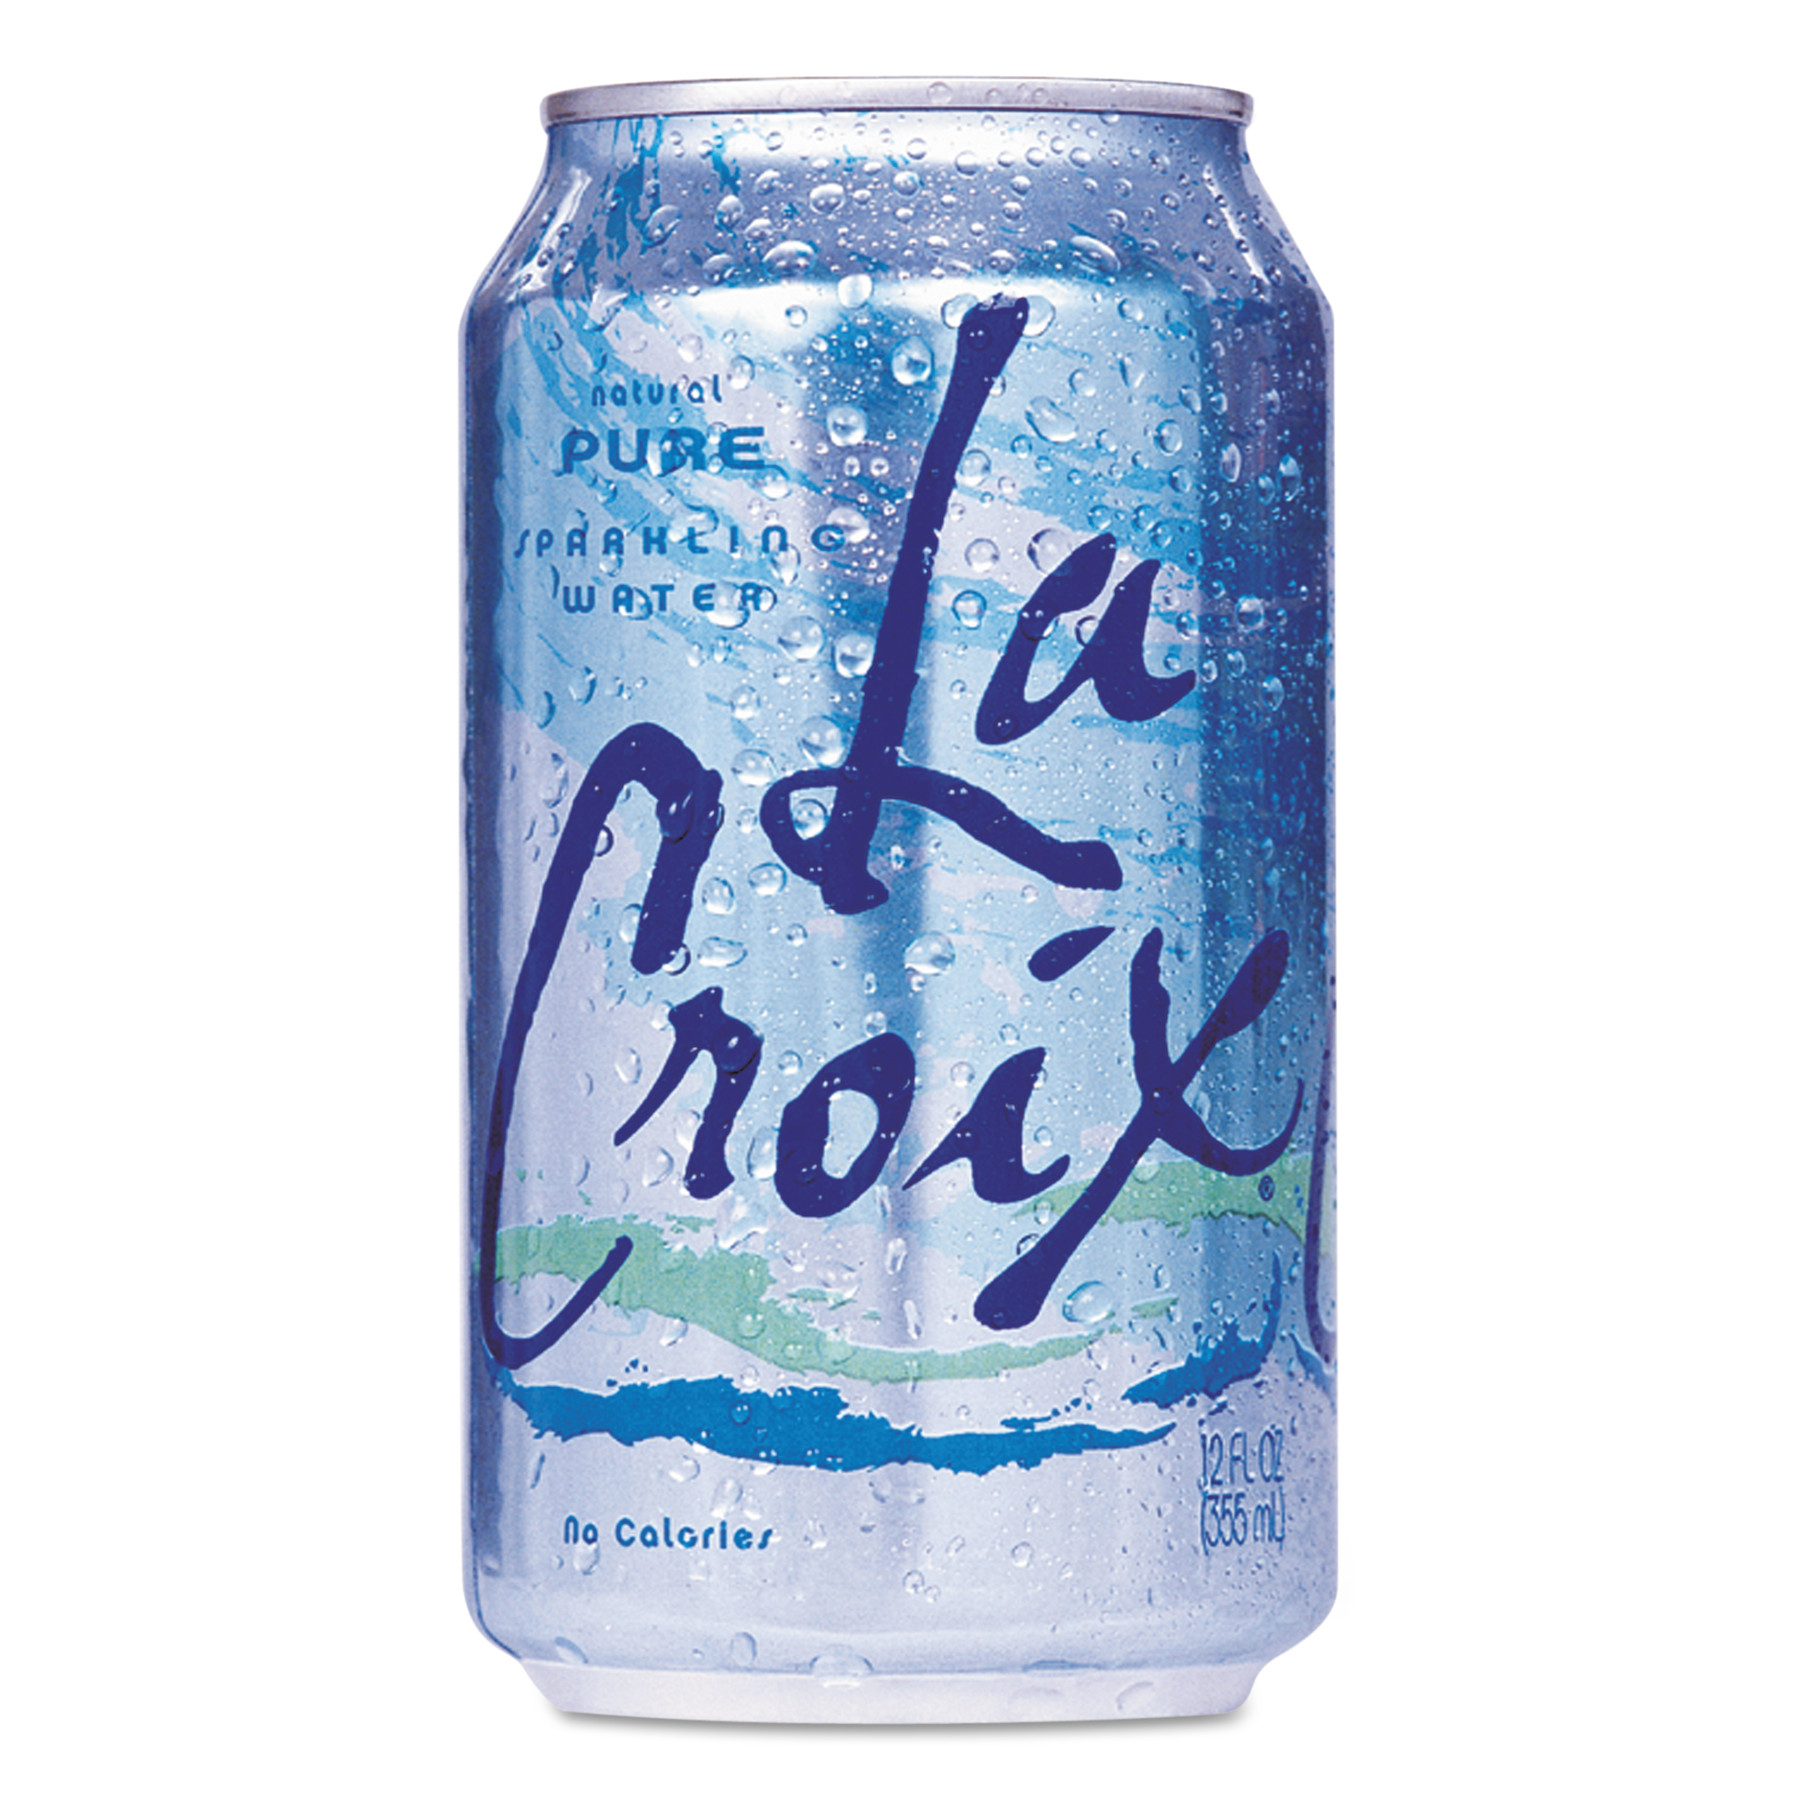 LaCroix Pure Sparkling Water, 12 fl oz, 24 pack